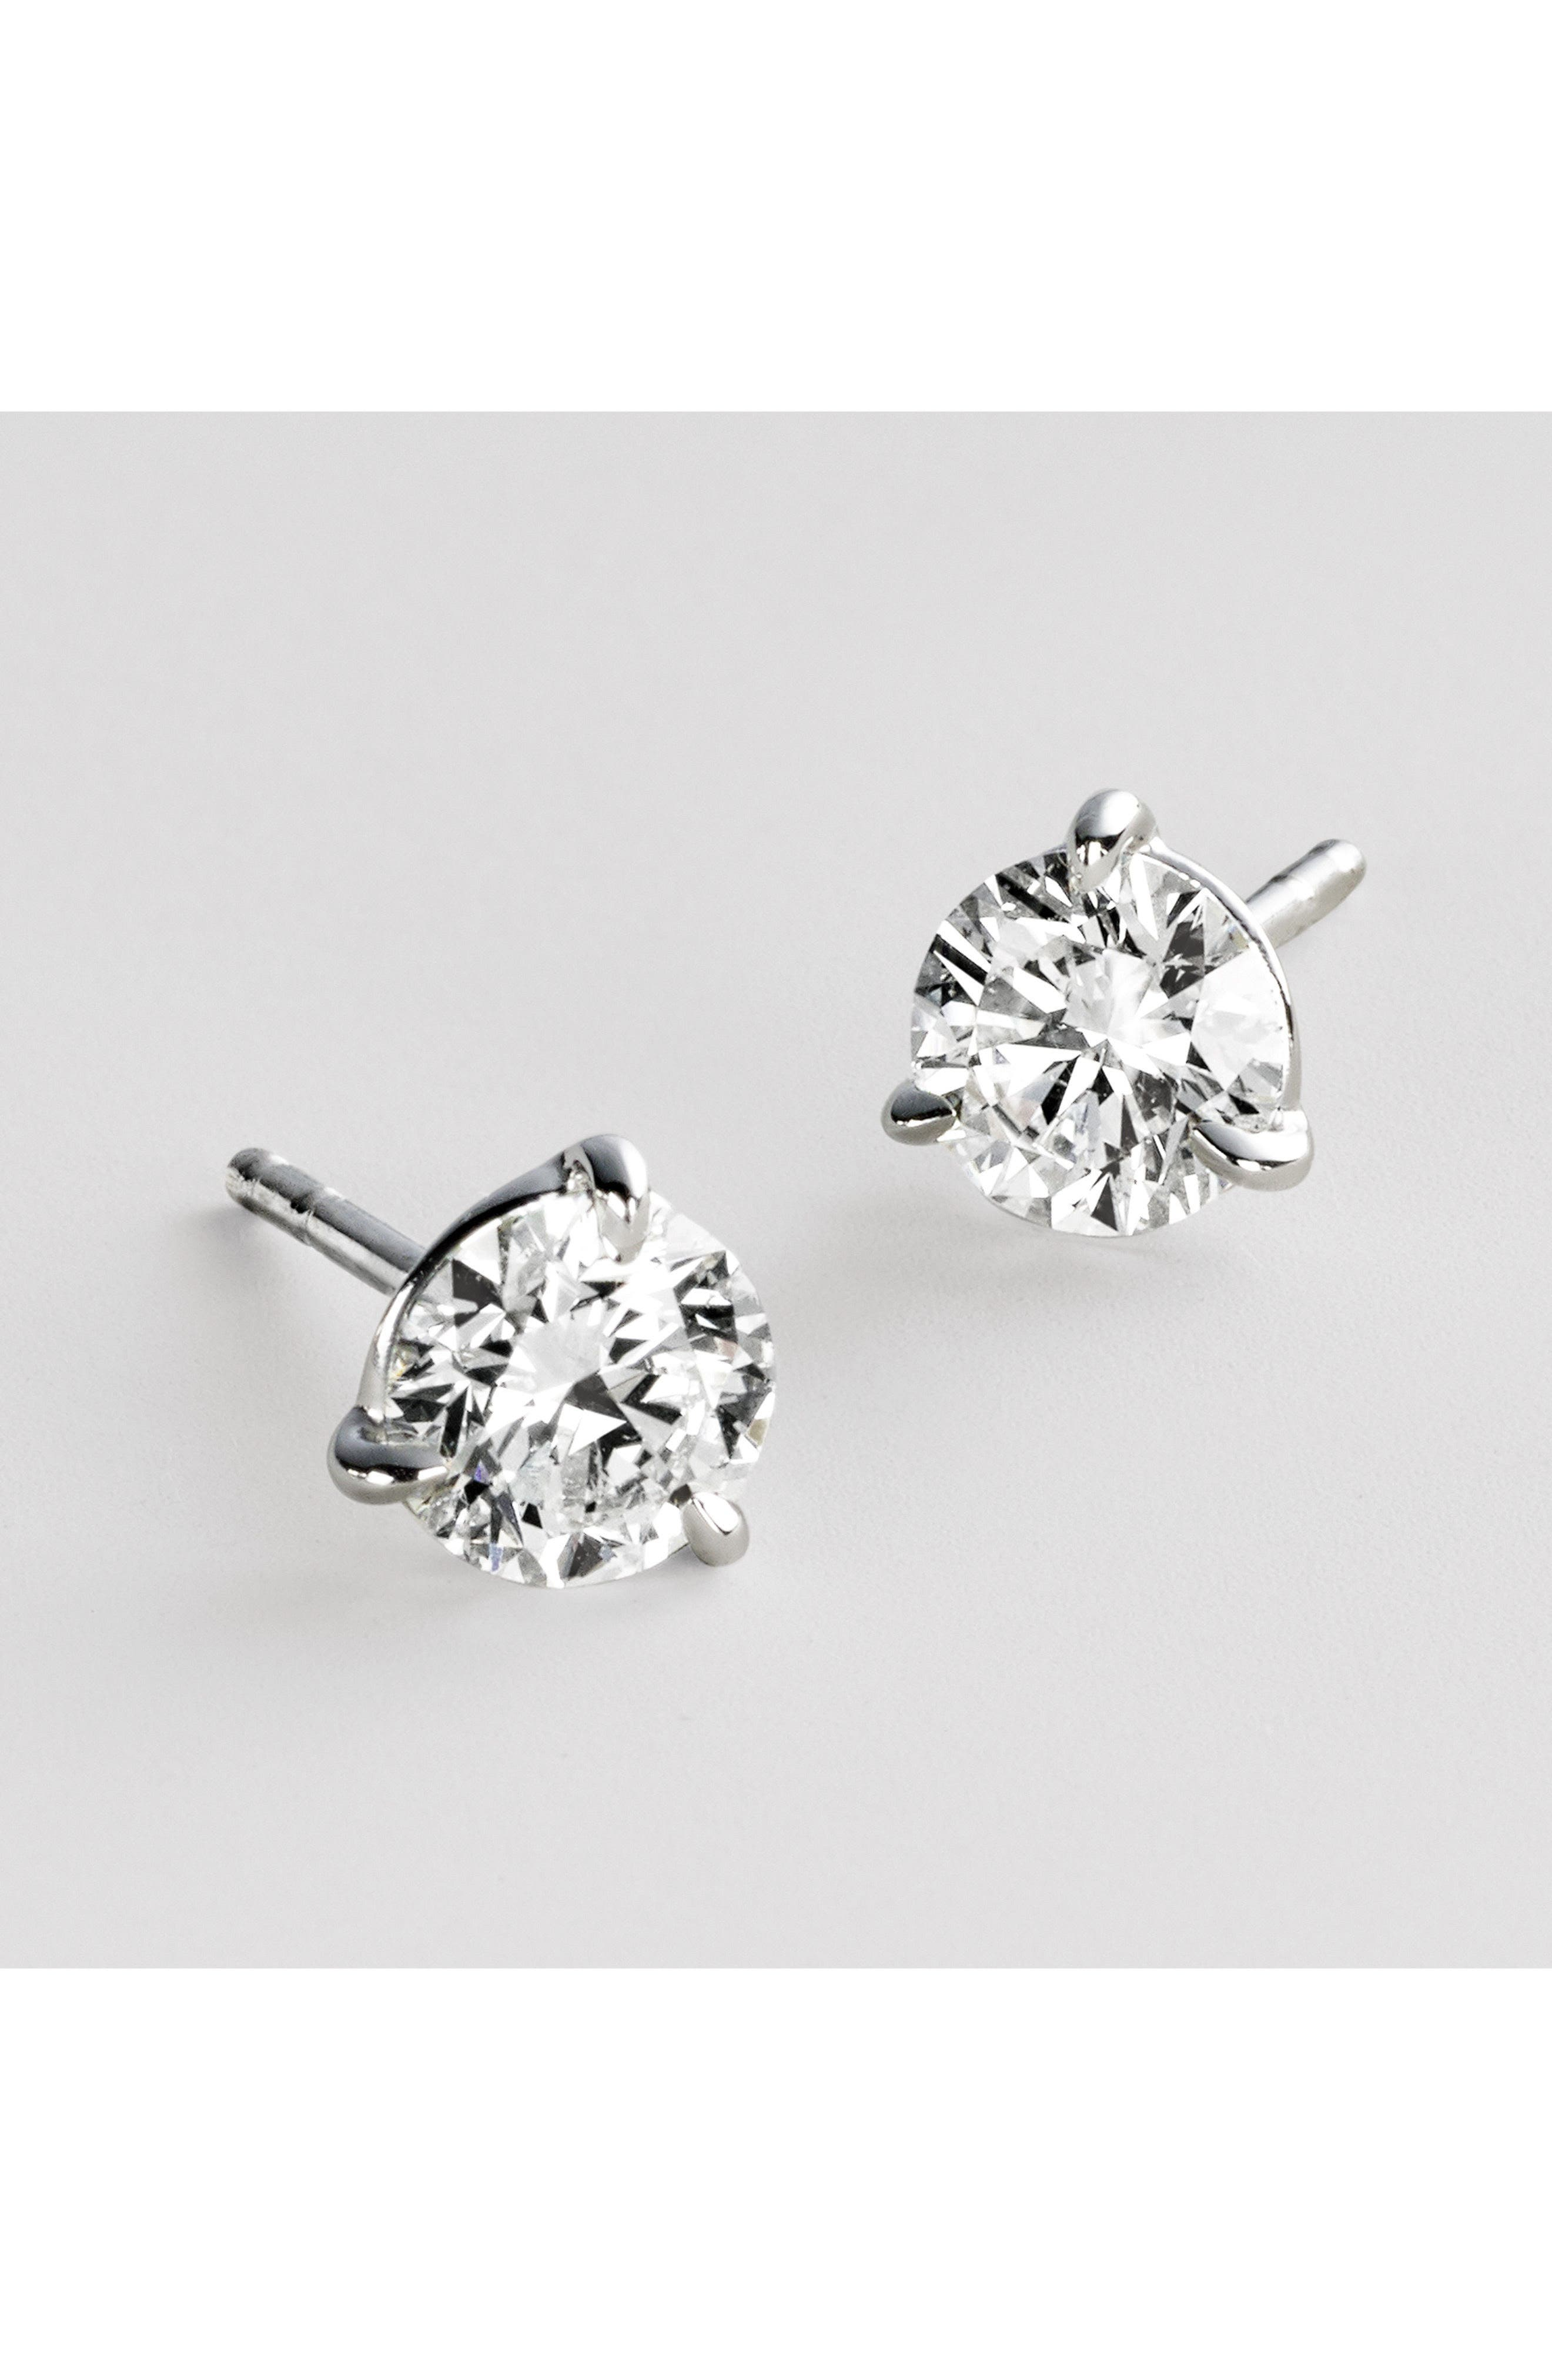 1.50ct tw Diamond & Platinum Stud Earrings,                             Alternate thumbnail 7, color,                             PLATINUM